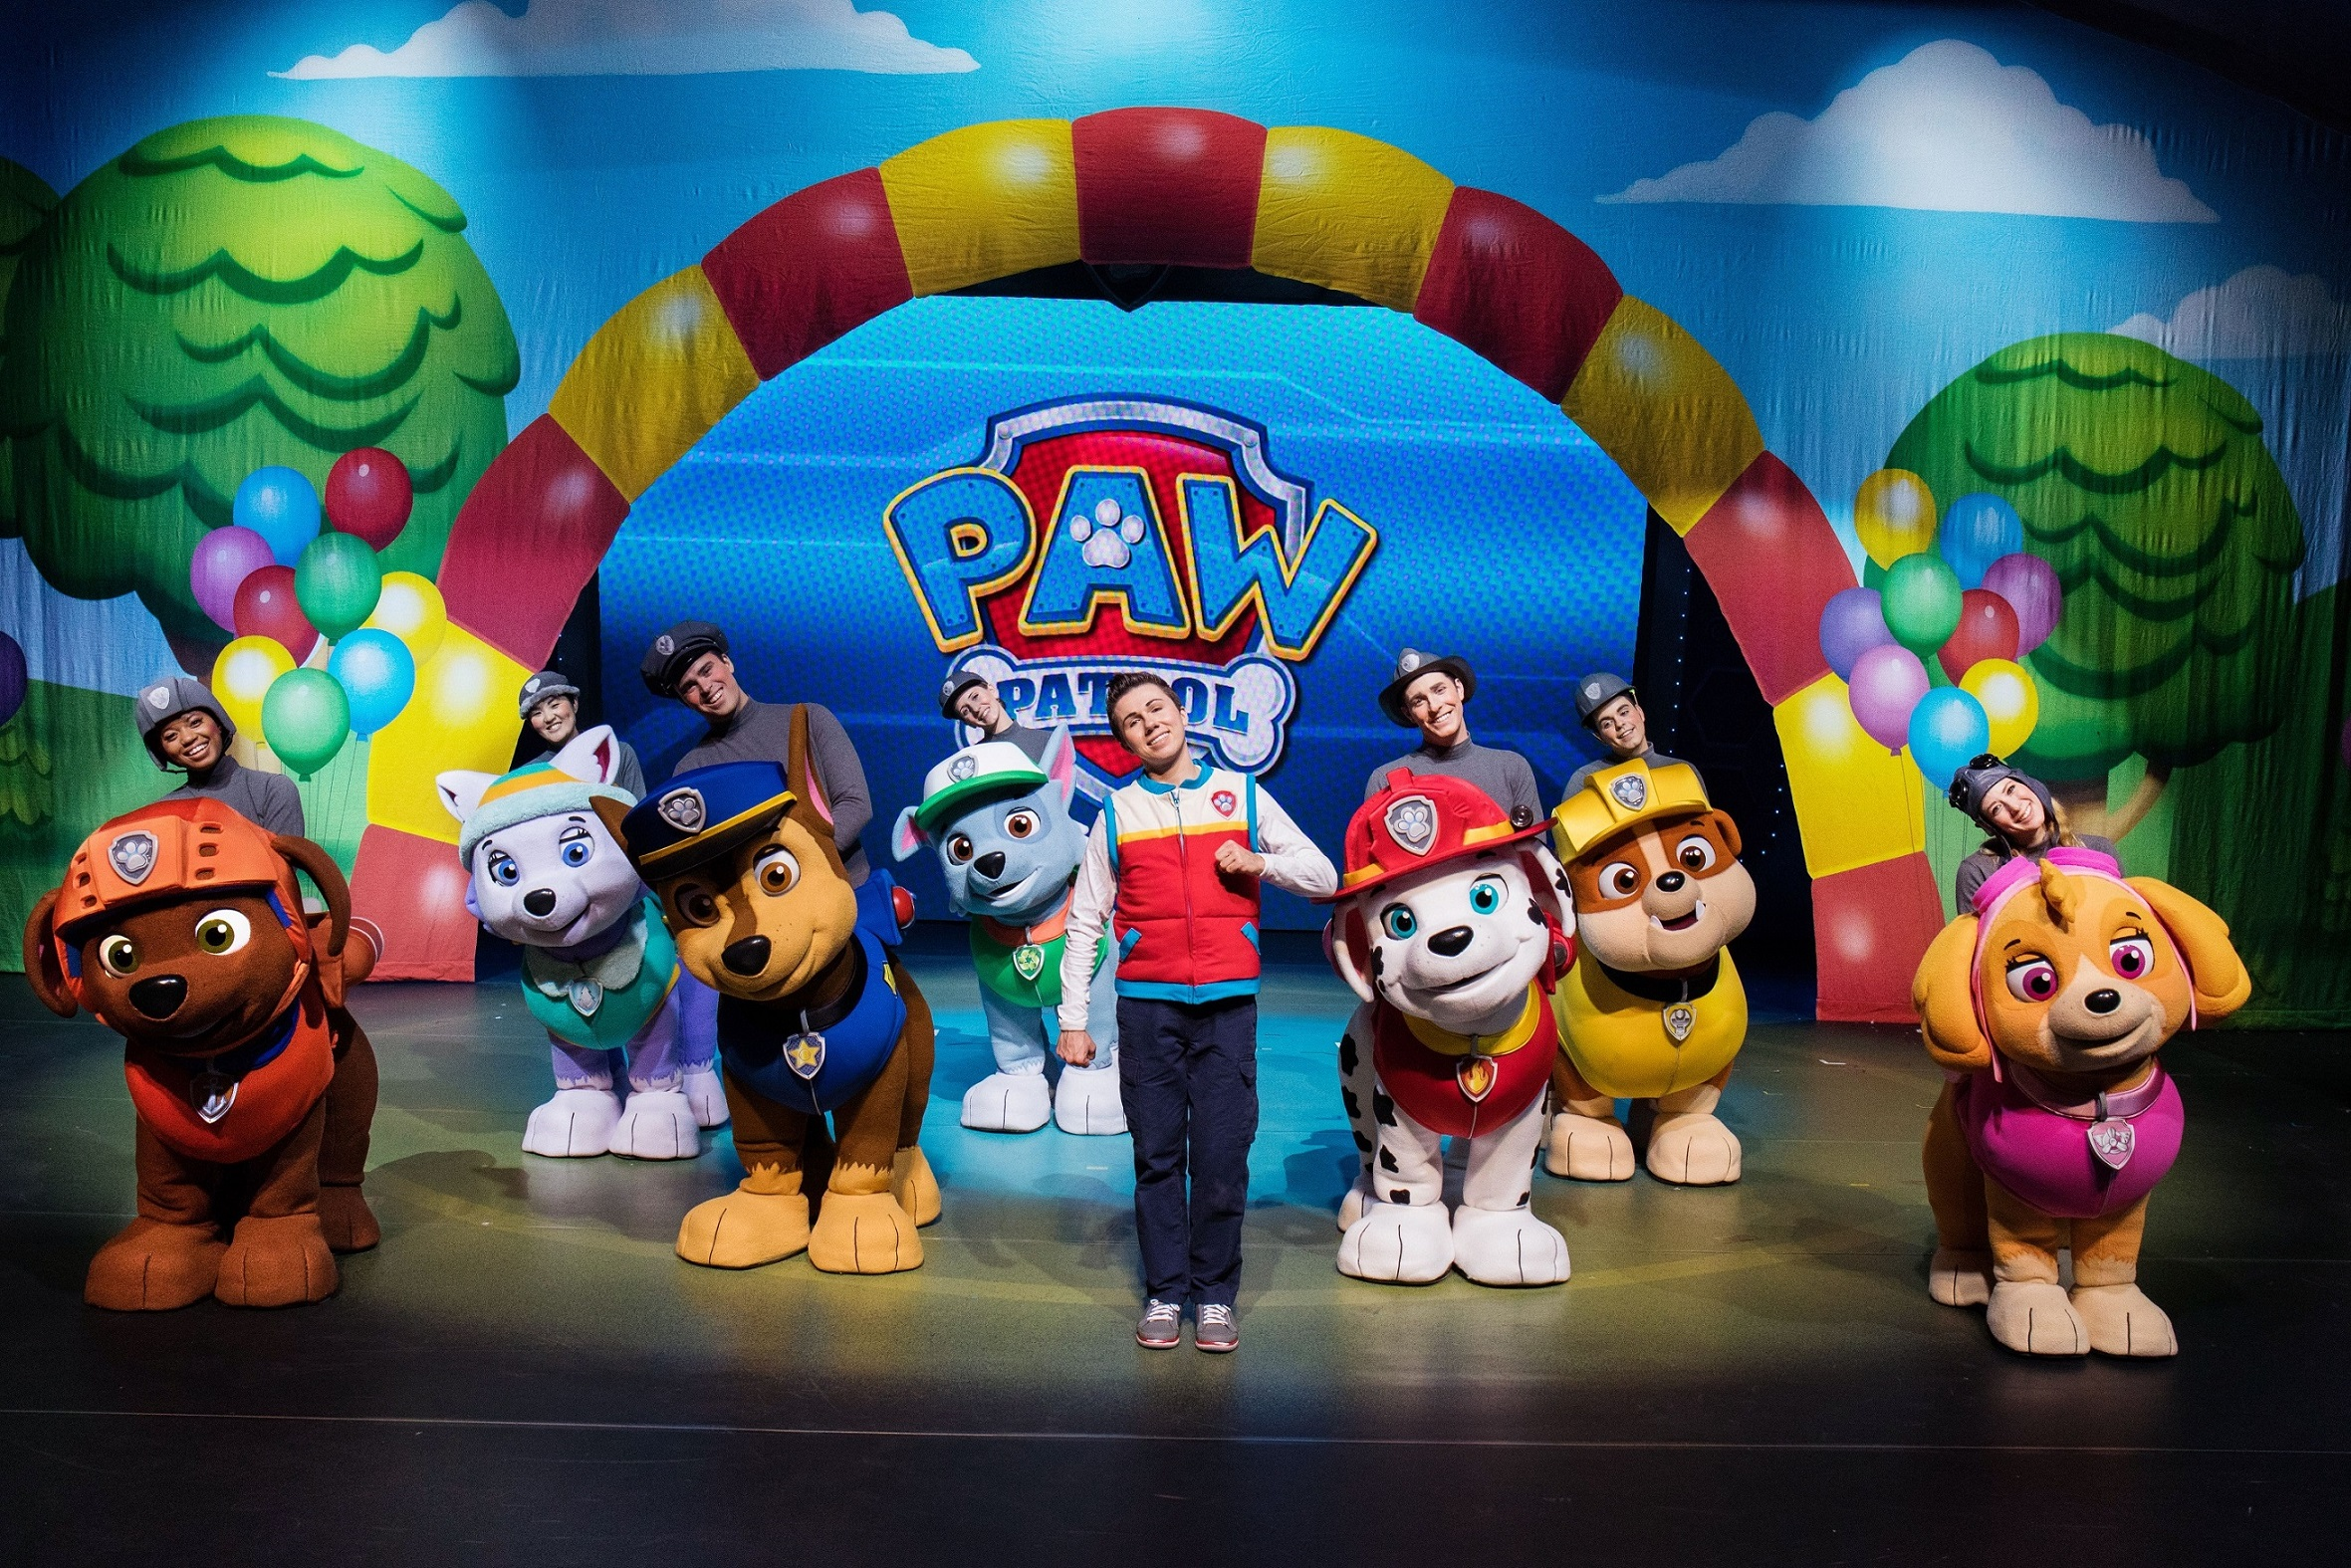 Paw Patrol Live is coming and here's how to get tickets